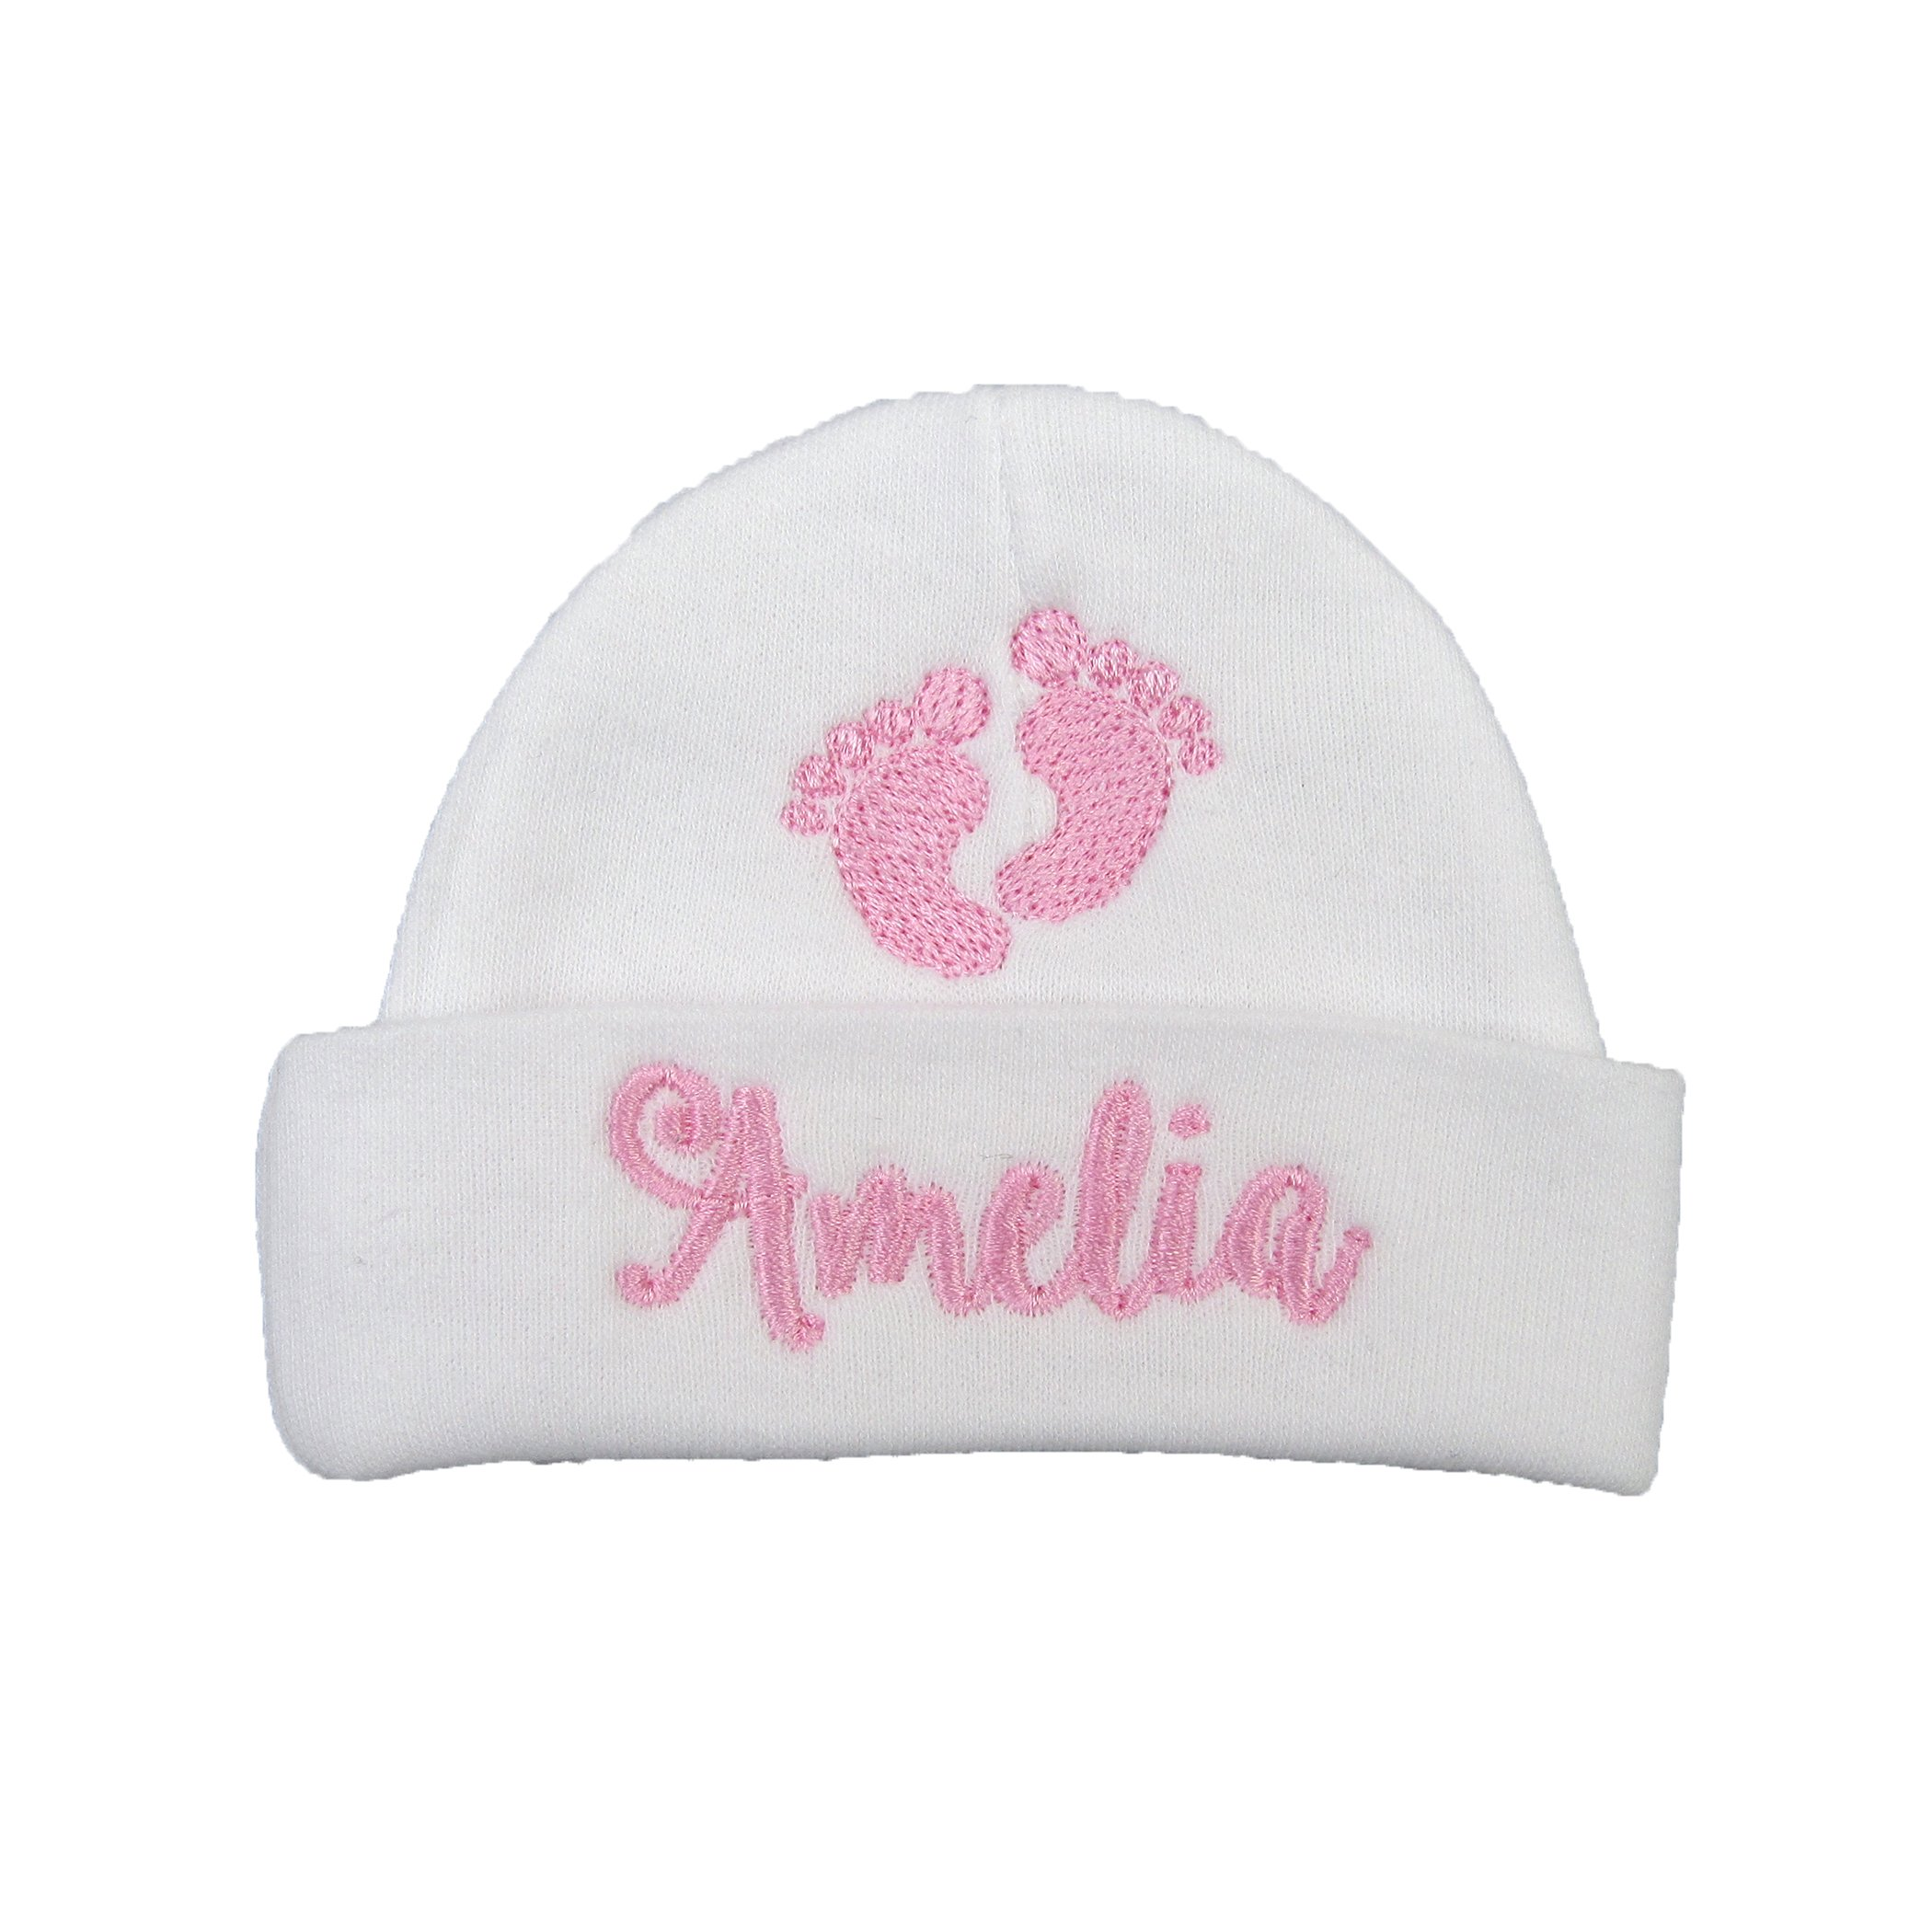 e897f30b7f4f1 Ava s Miracles Personalized Baby Girl hat with Embroidered Footprints -  Preemie Girl hat